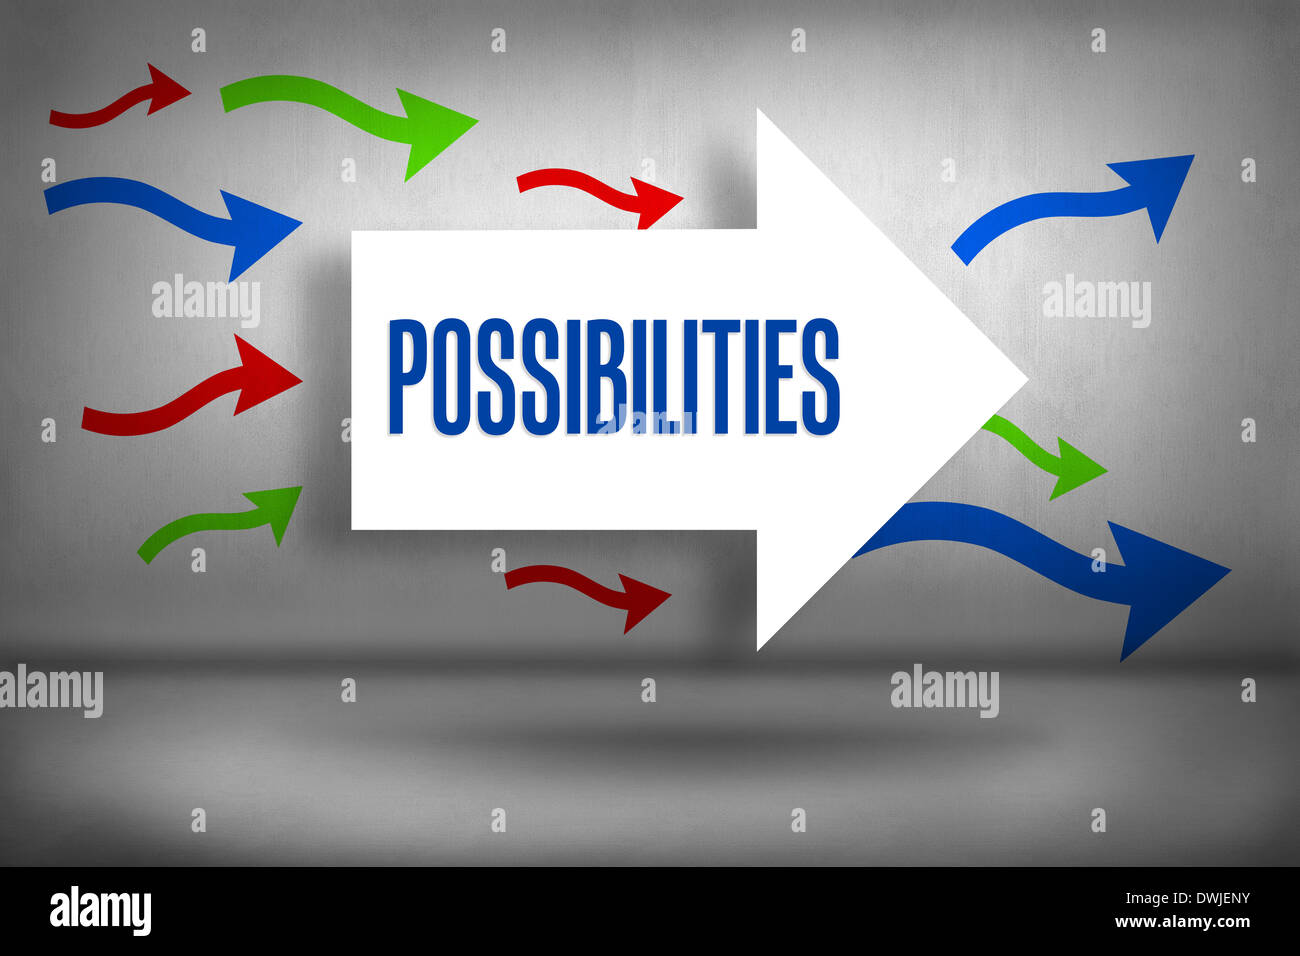 Possibilities against arrows pointing - Stock Image